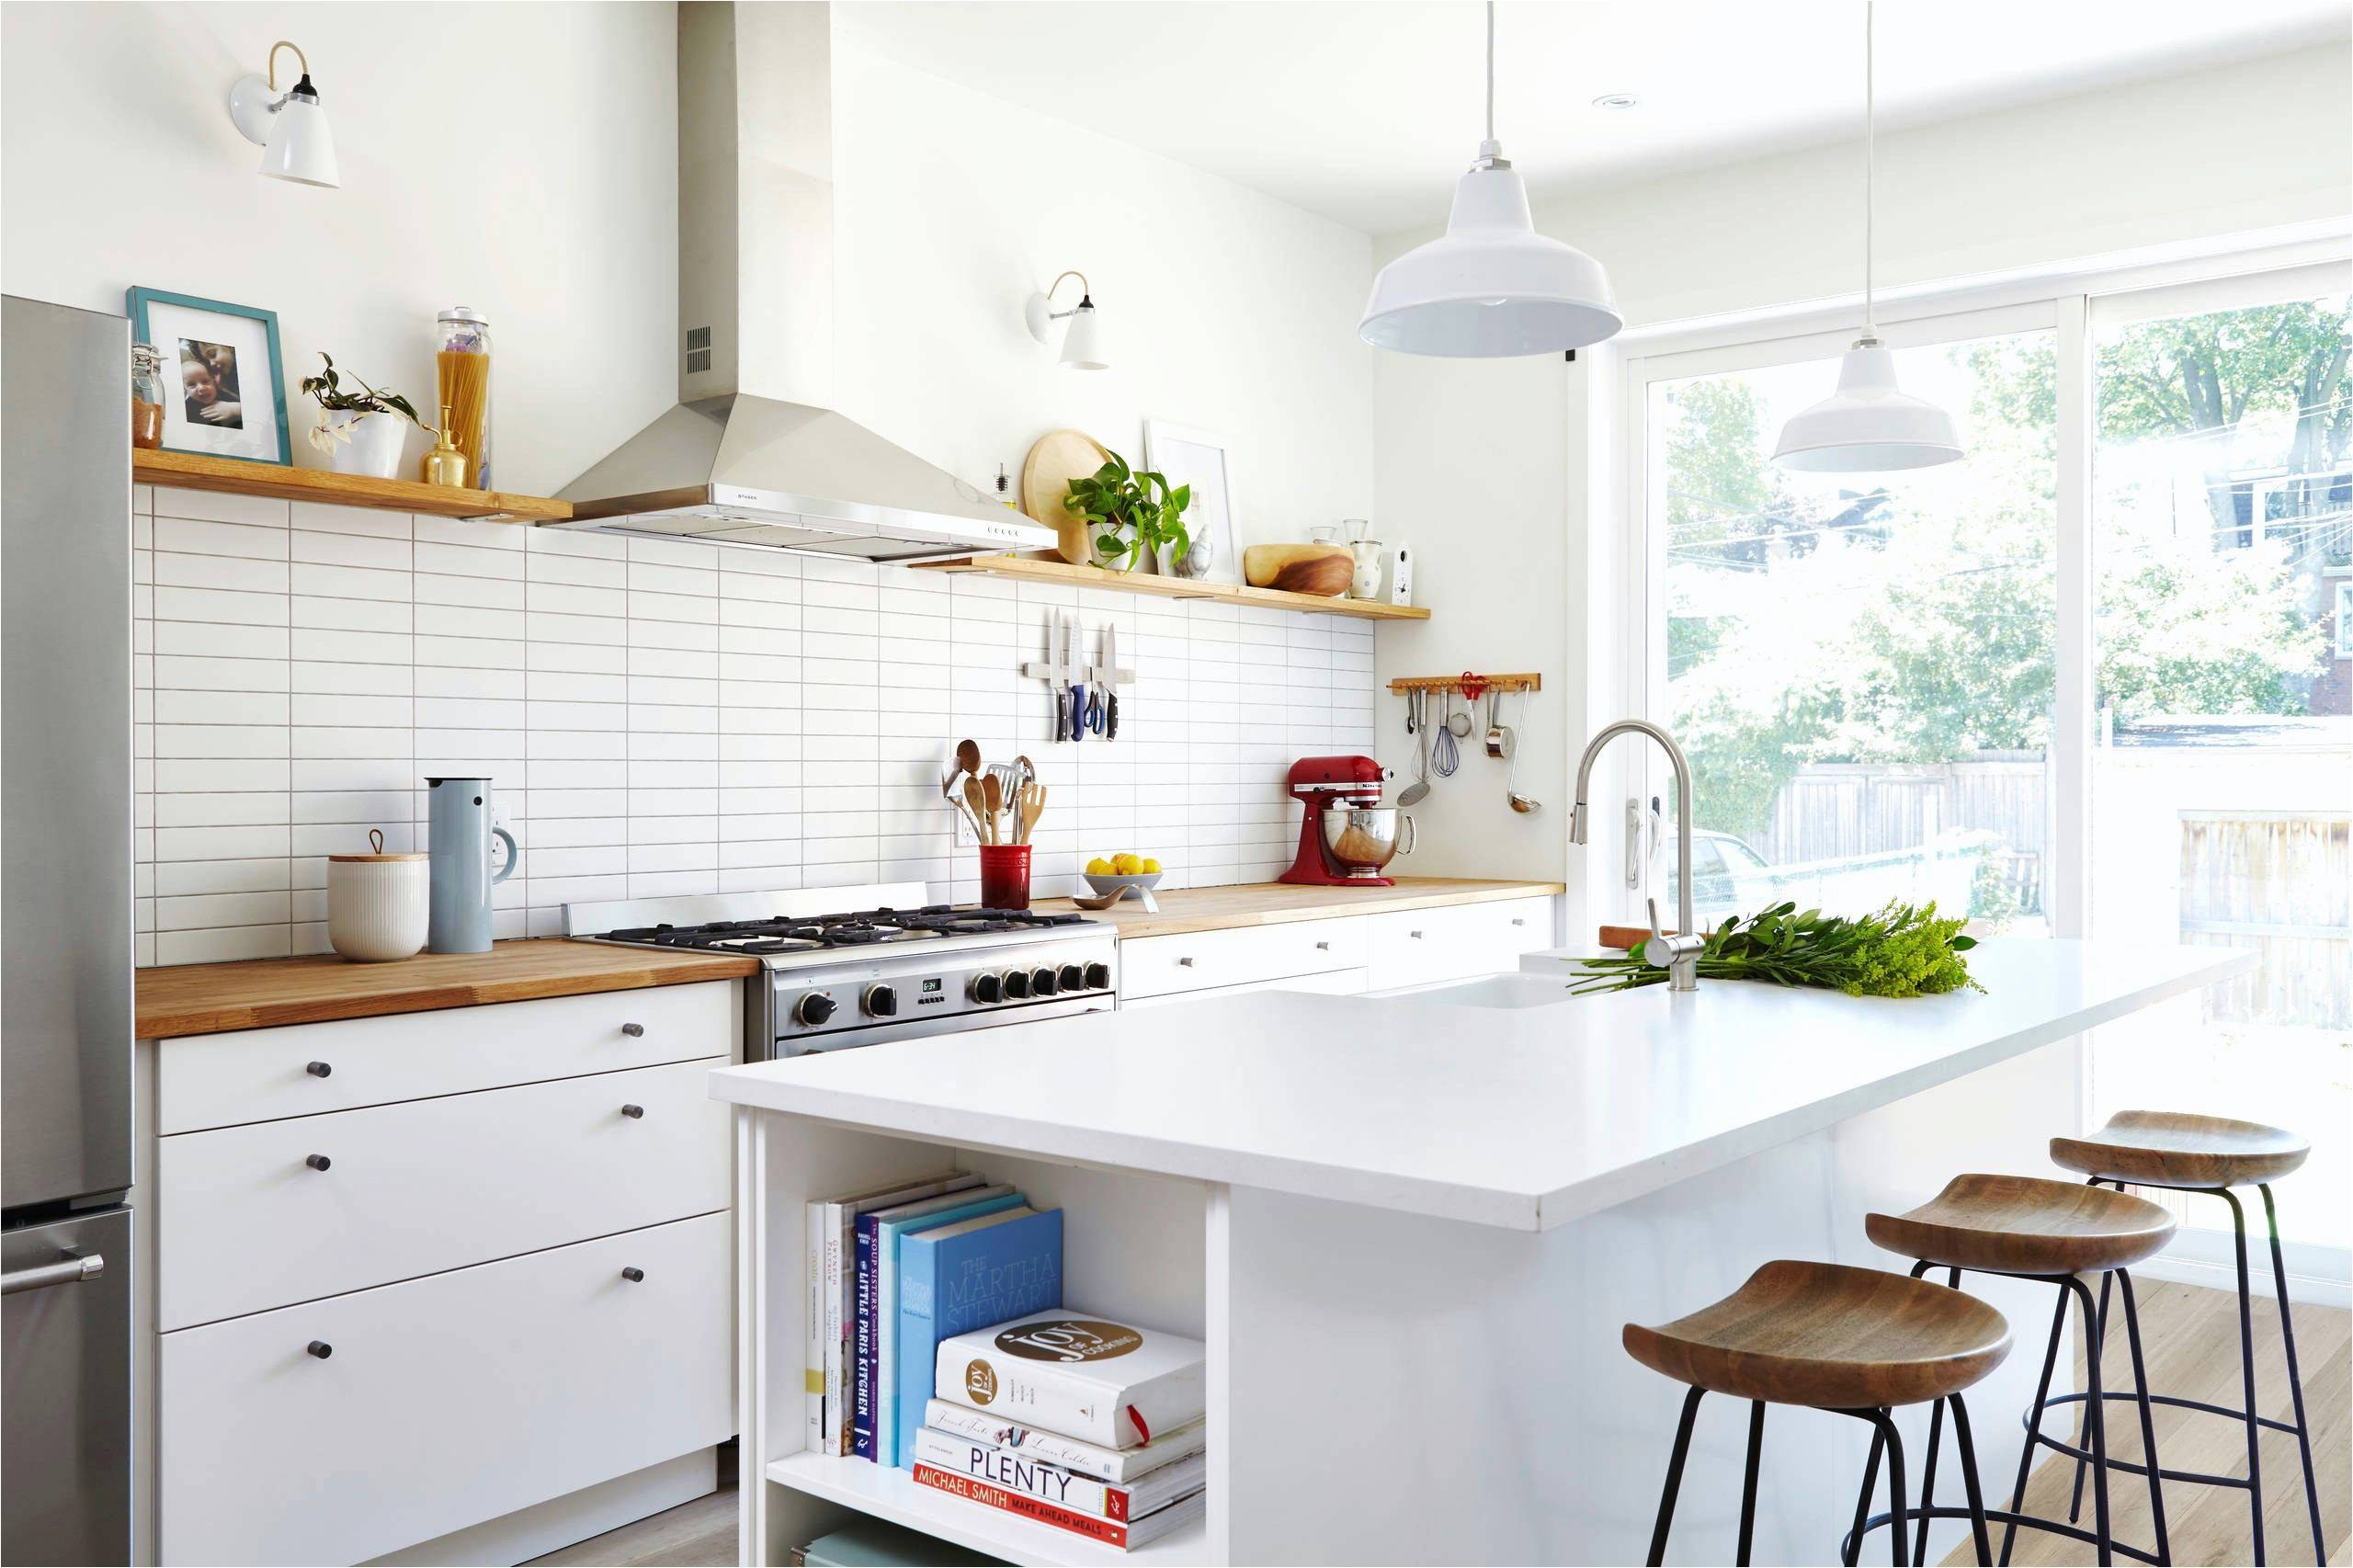 small kitchen ideas with island winsome kitchens with islands ideas kitchen island ideas small kitchens collection